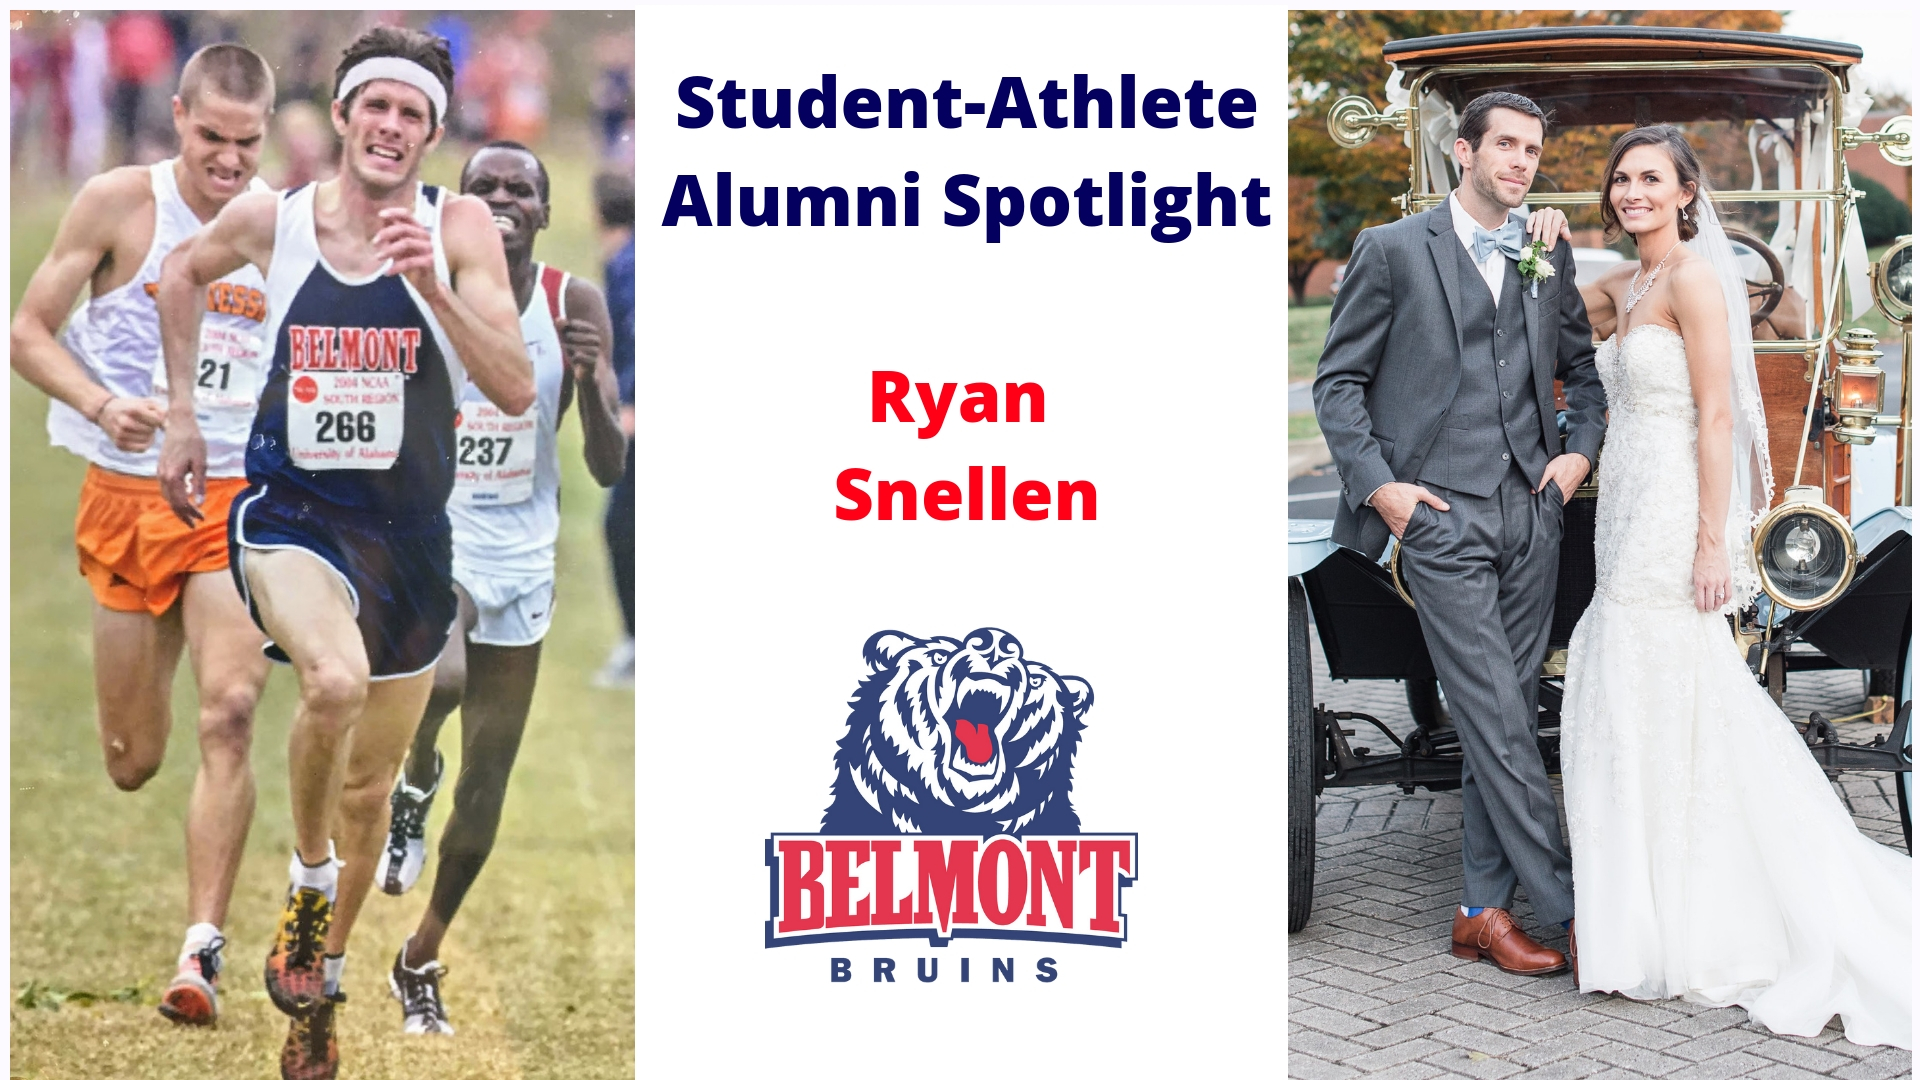 Student-Athlete Alumni Spotlight -- Ryan Snellen